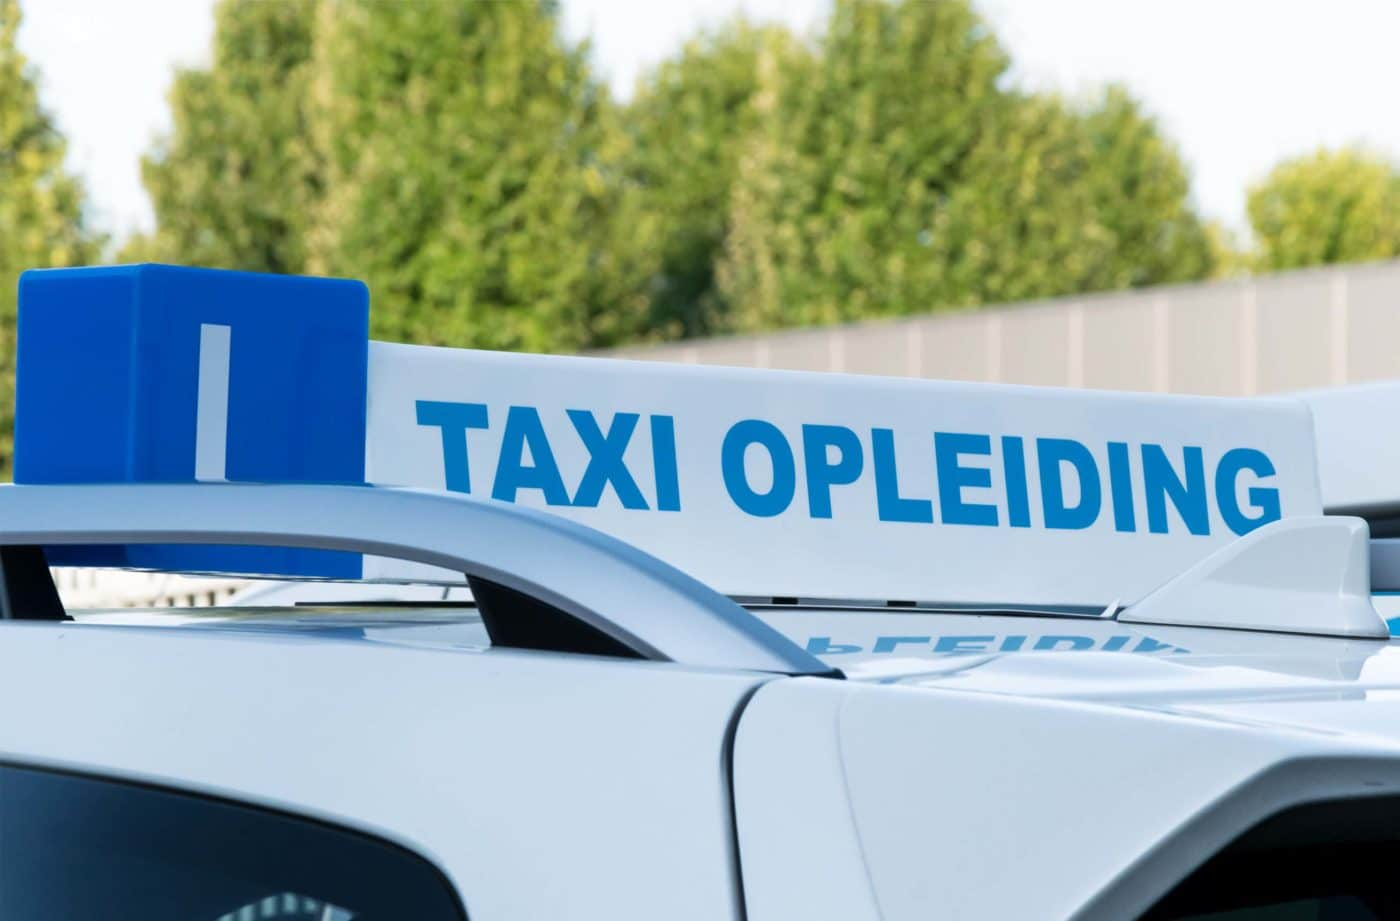 Taxi opleiding euro transport college